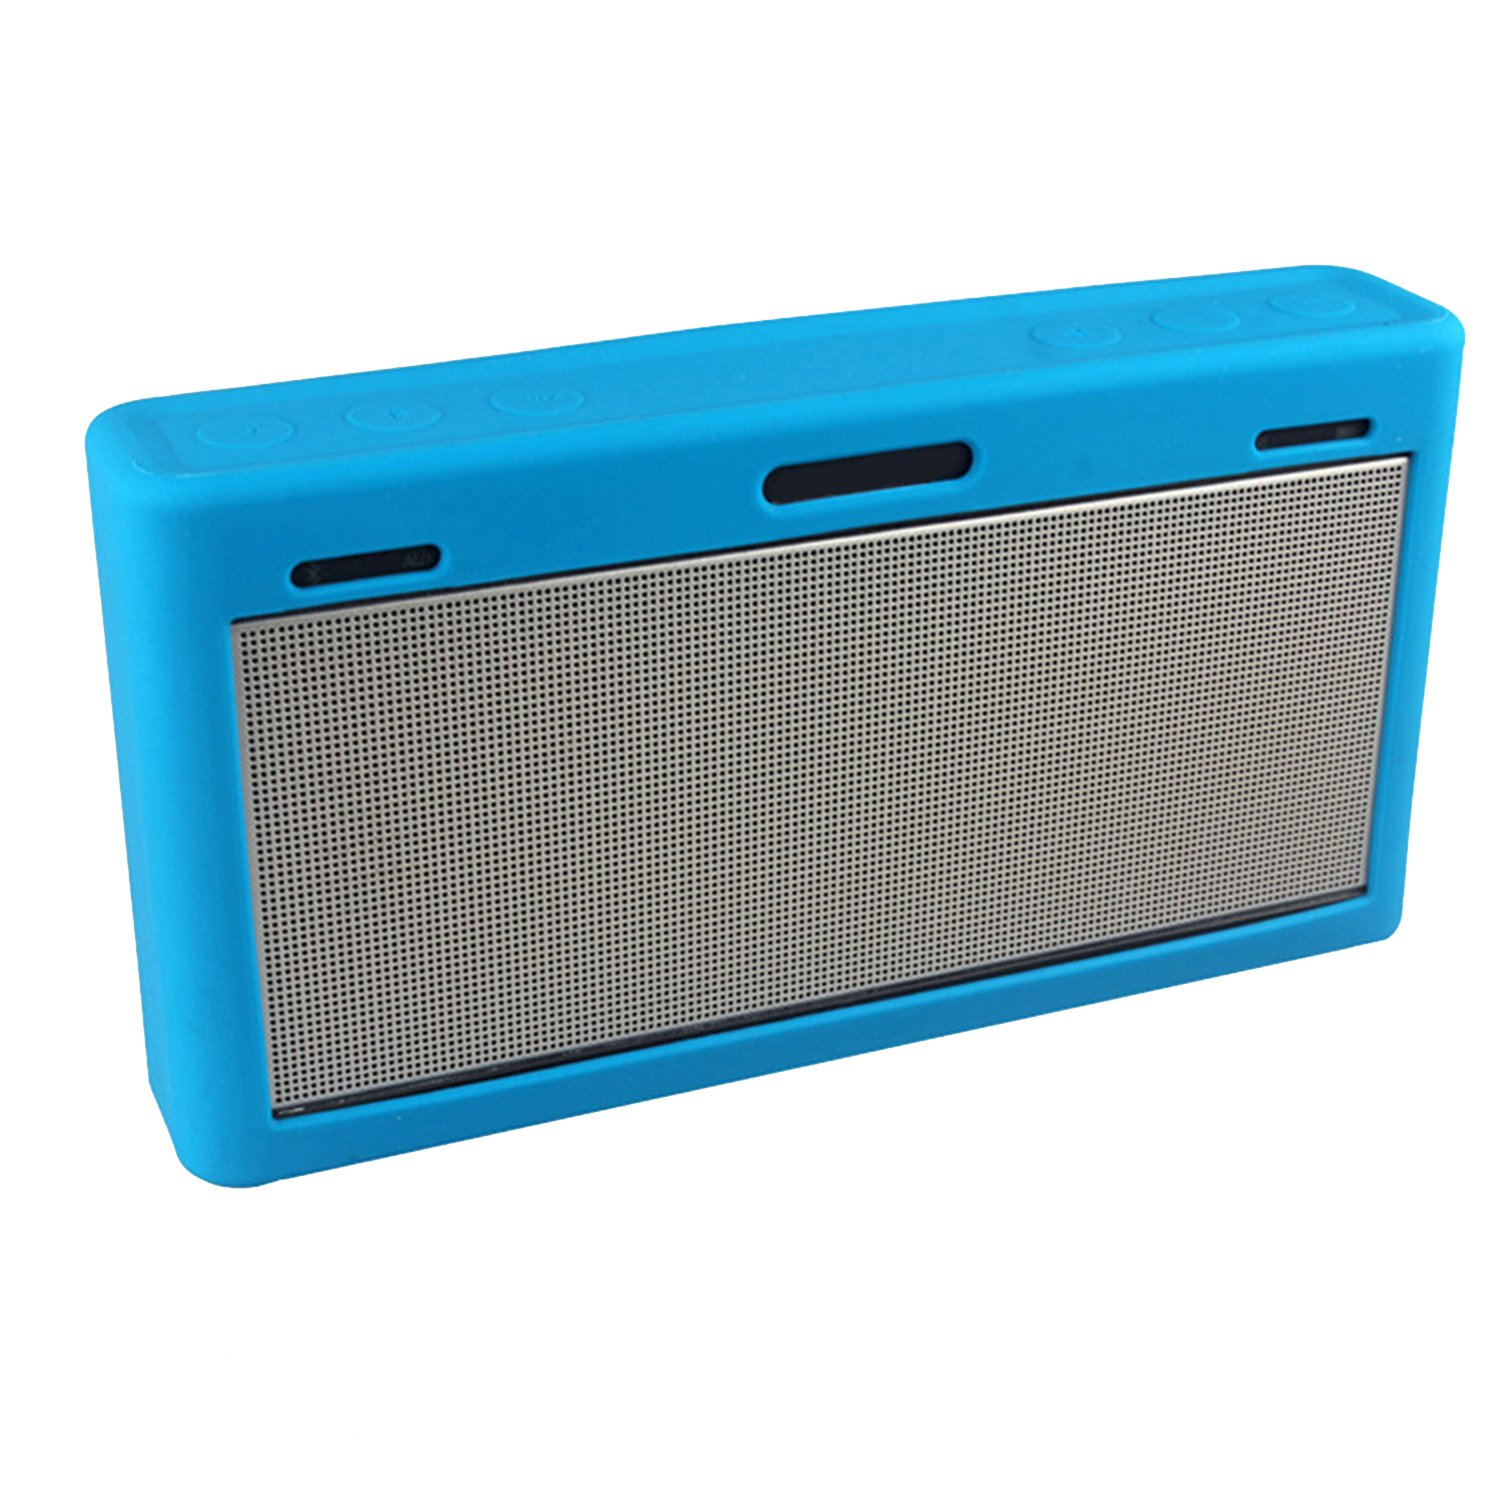 LuckyNV Protective Case Soft Silicone Shockproof Waterproof Protective Sleeve for Bose SoundLink 3 Bluetooth Speaker (Blue) by LuckyNV